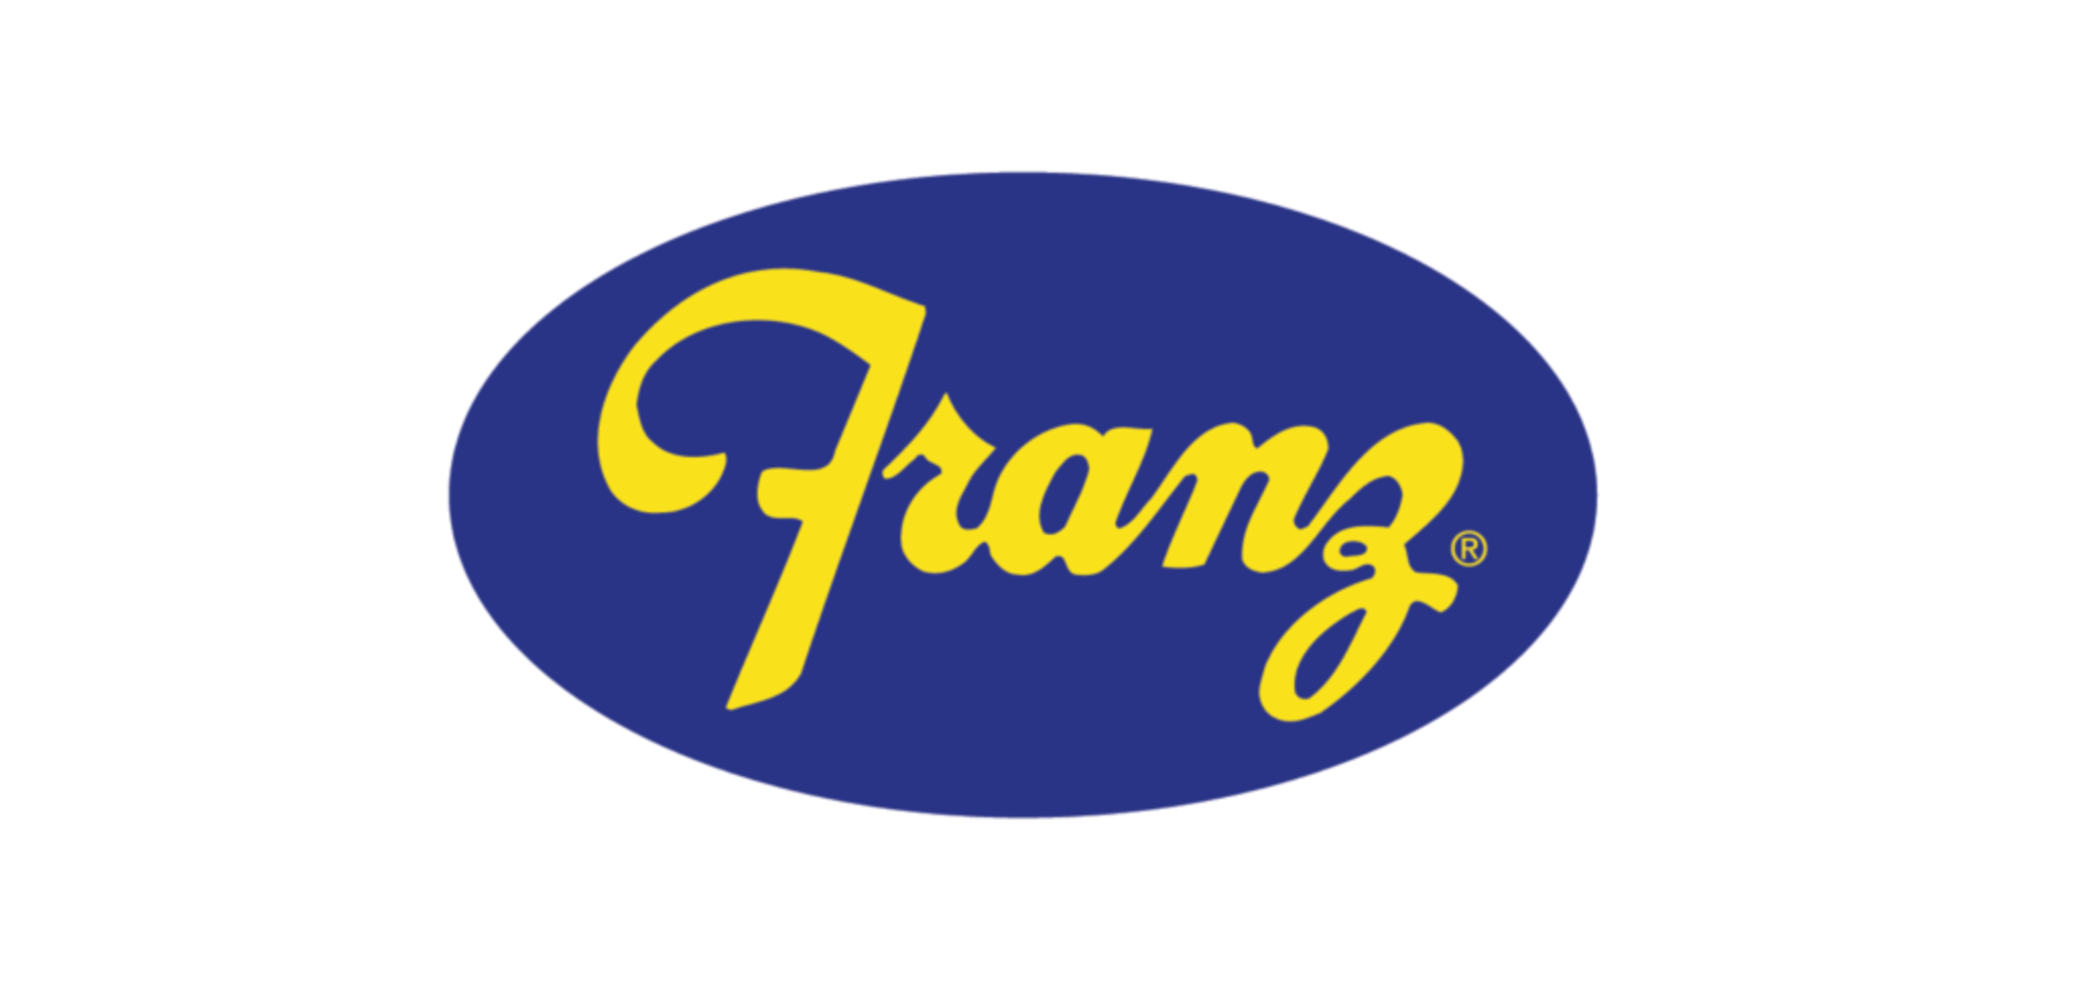 Franz Bakery: 4-Locations: 500+ Lots of Bread, Roll & Bun Production Featuring Roll Lines, Mixers, Liquifiers, Sheeting, Proofers, Ovens & More